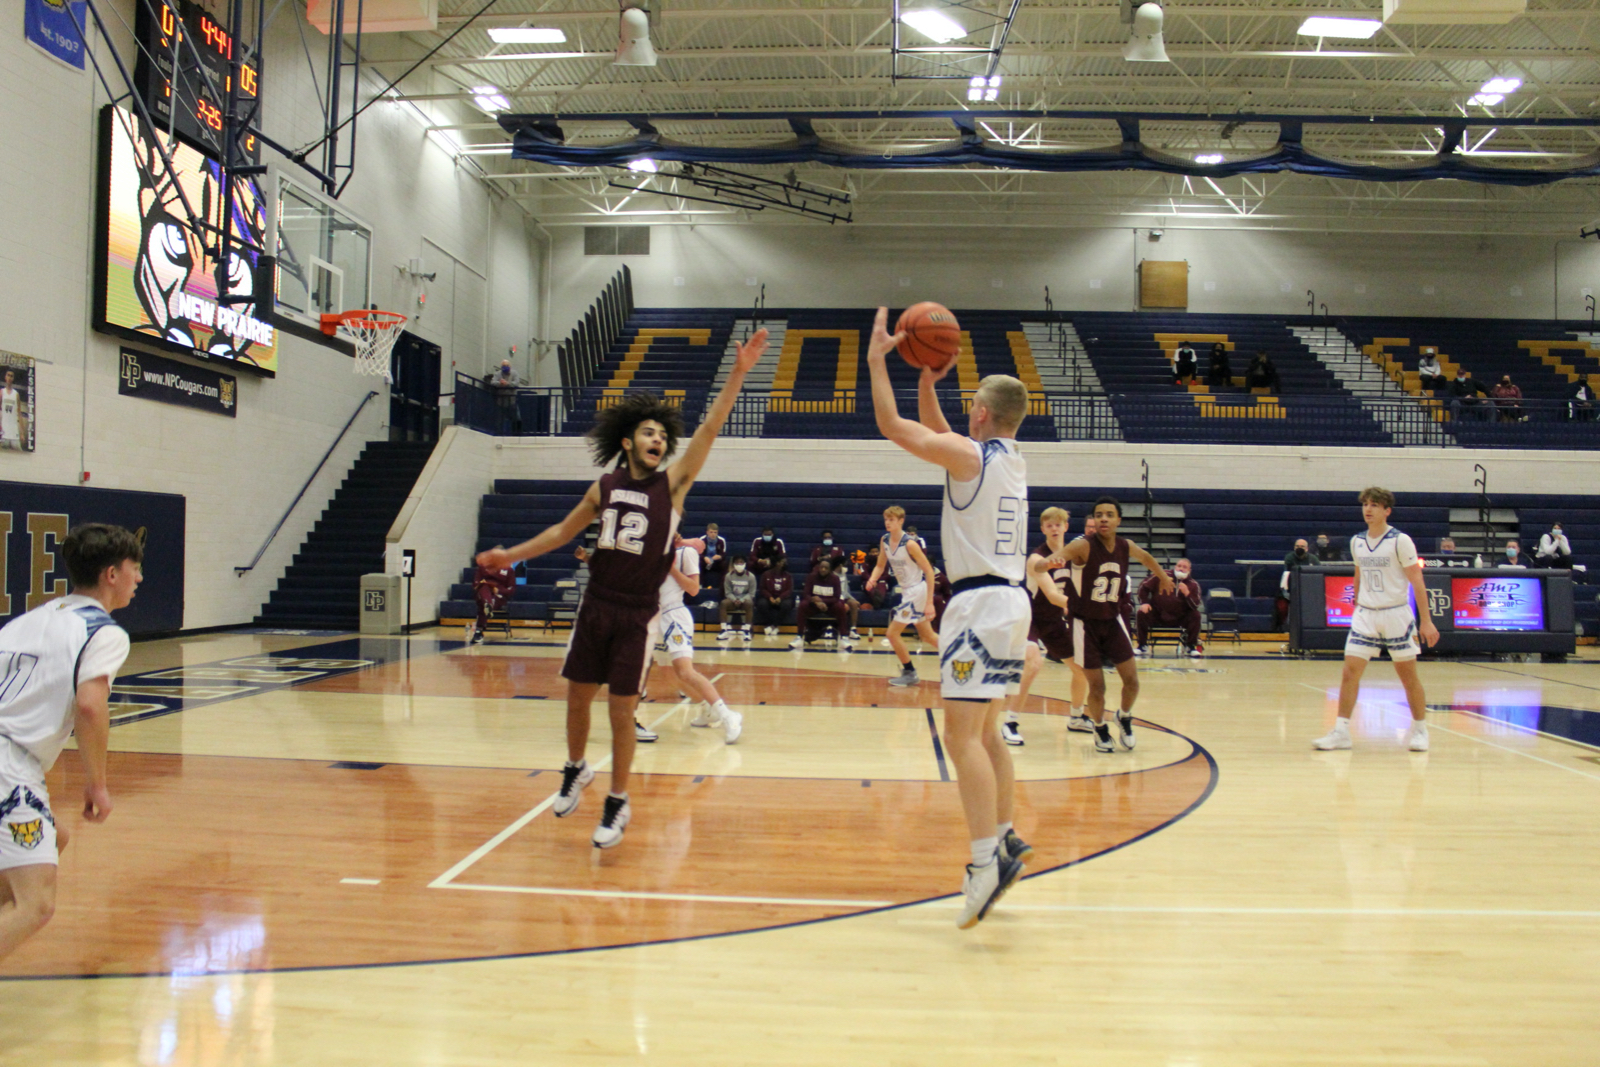 Boys JV Basketball vs. Mishawaka 2/13/21 (Photo Gallery)